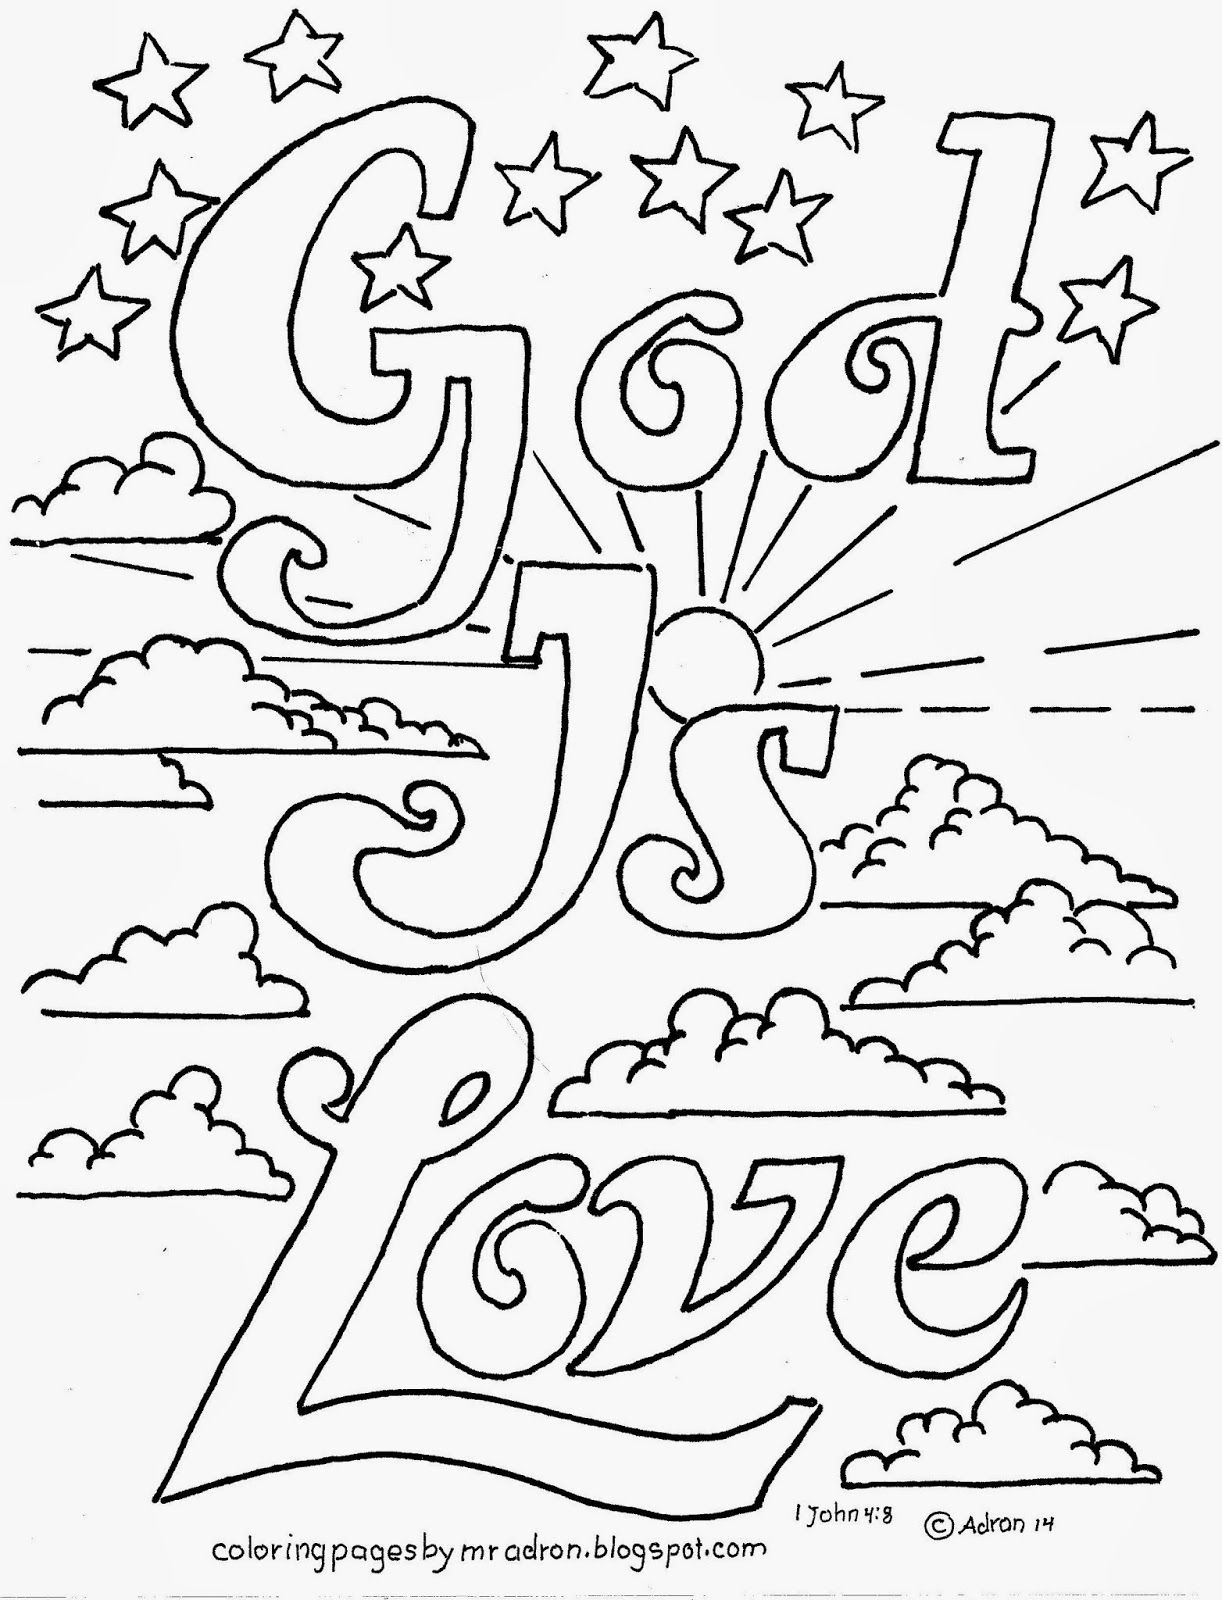 Coloring Pages for Kids by Mr Adron God Is Love